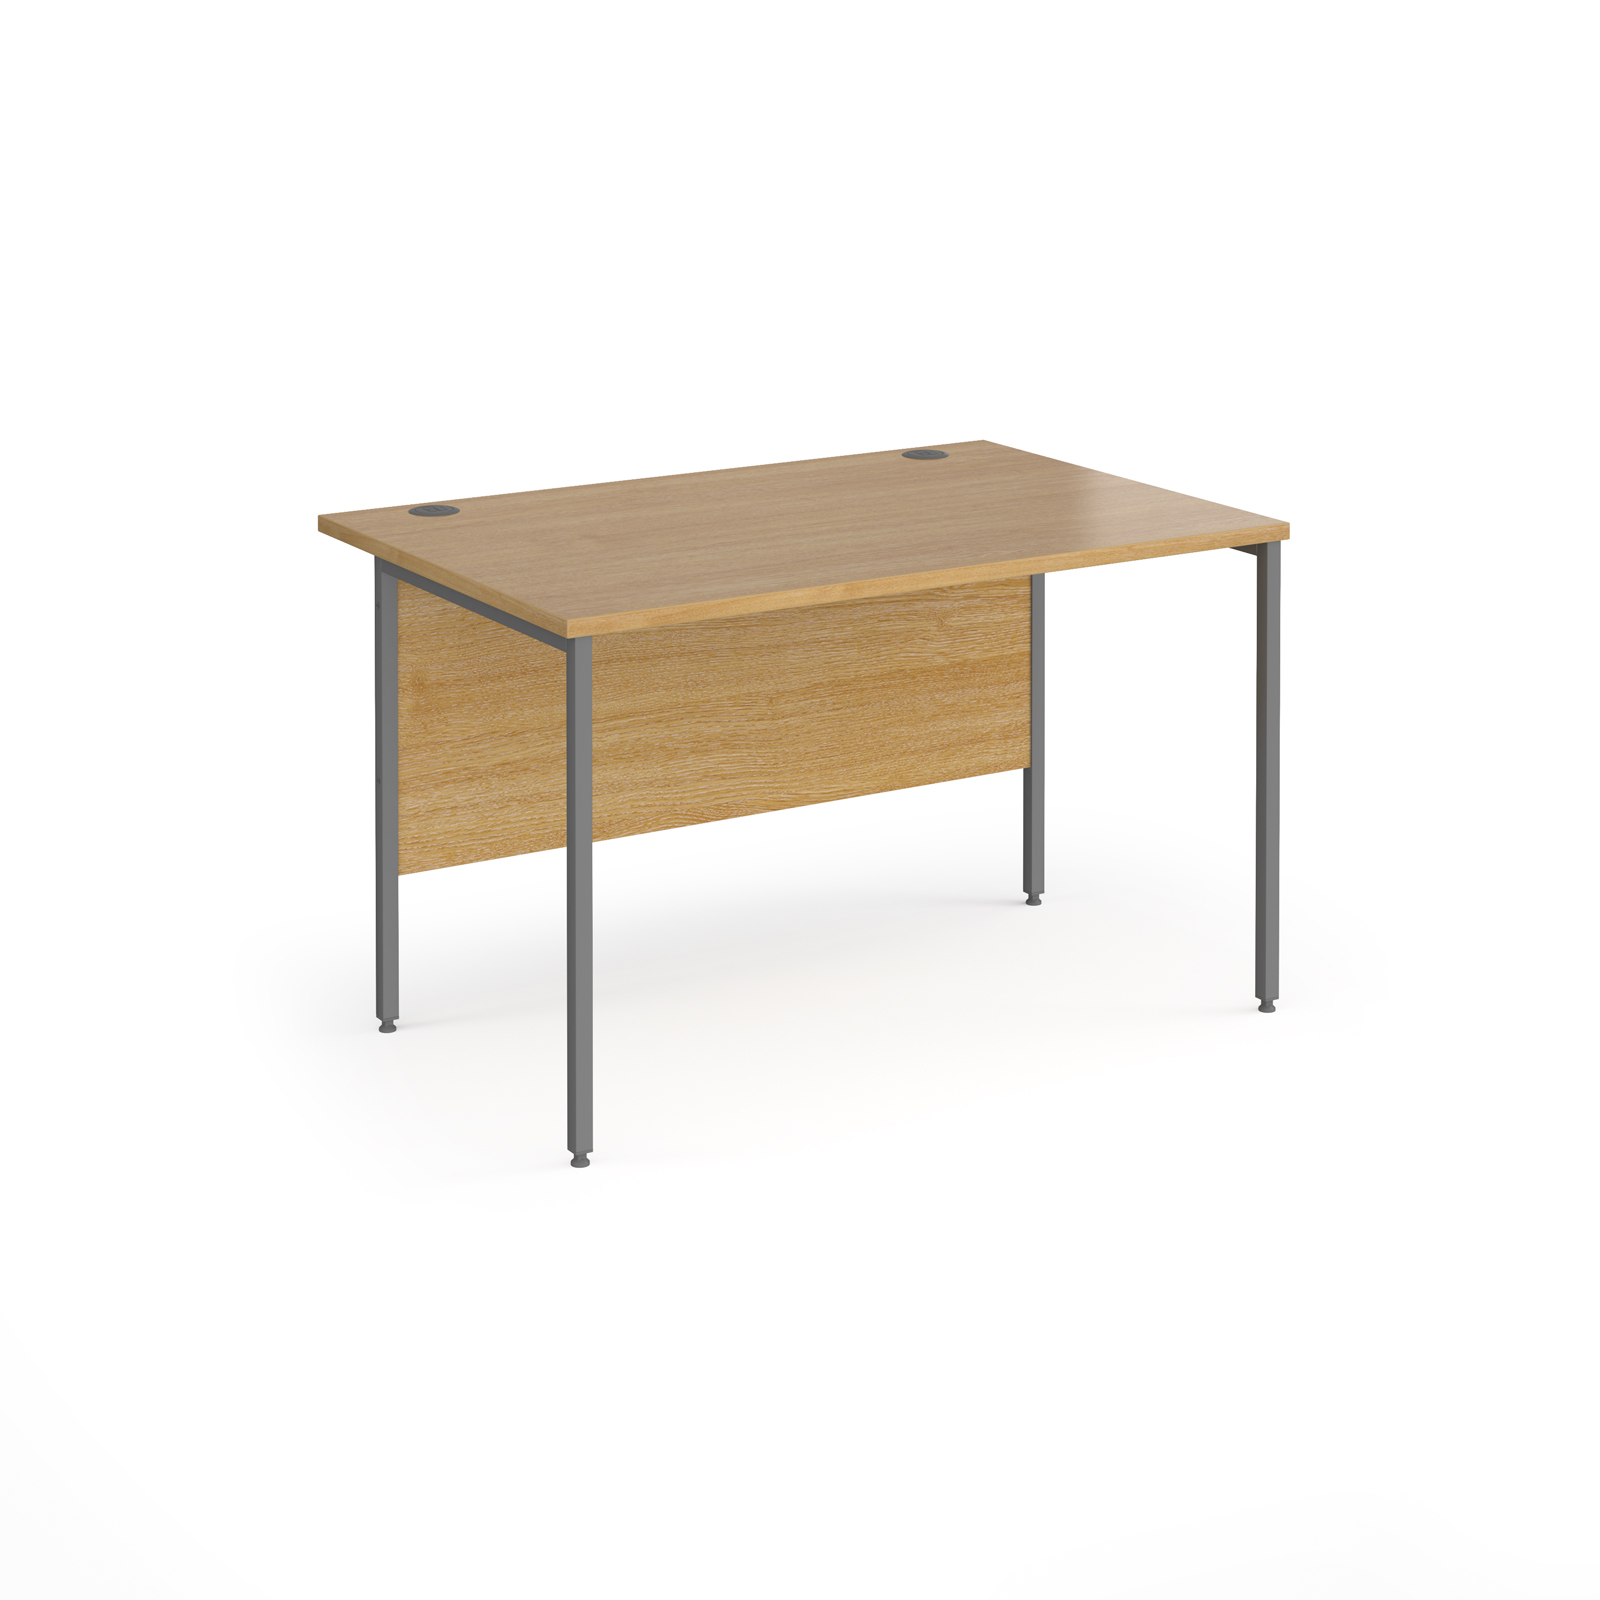 Contract 25 straight desk with graphite H-Frame leg 1200mm x 800mm - oak top